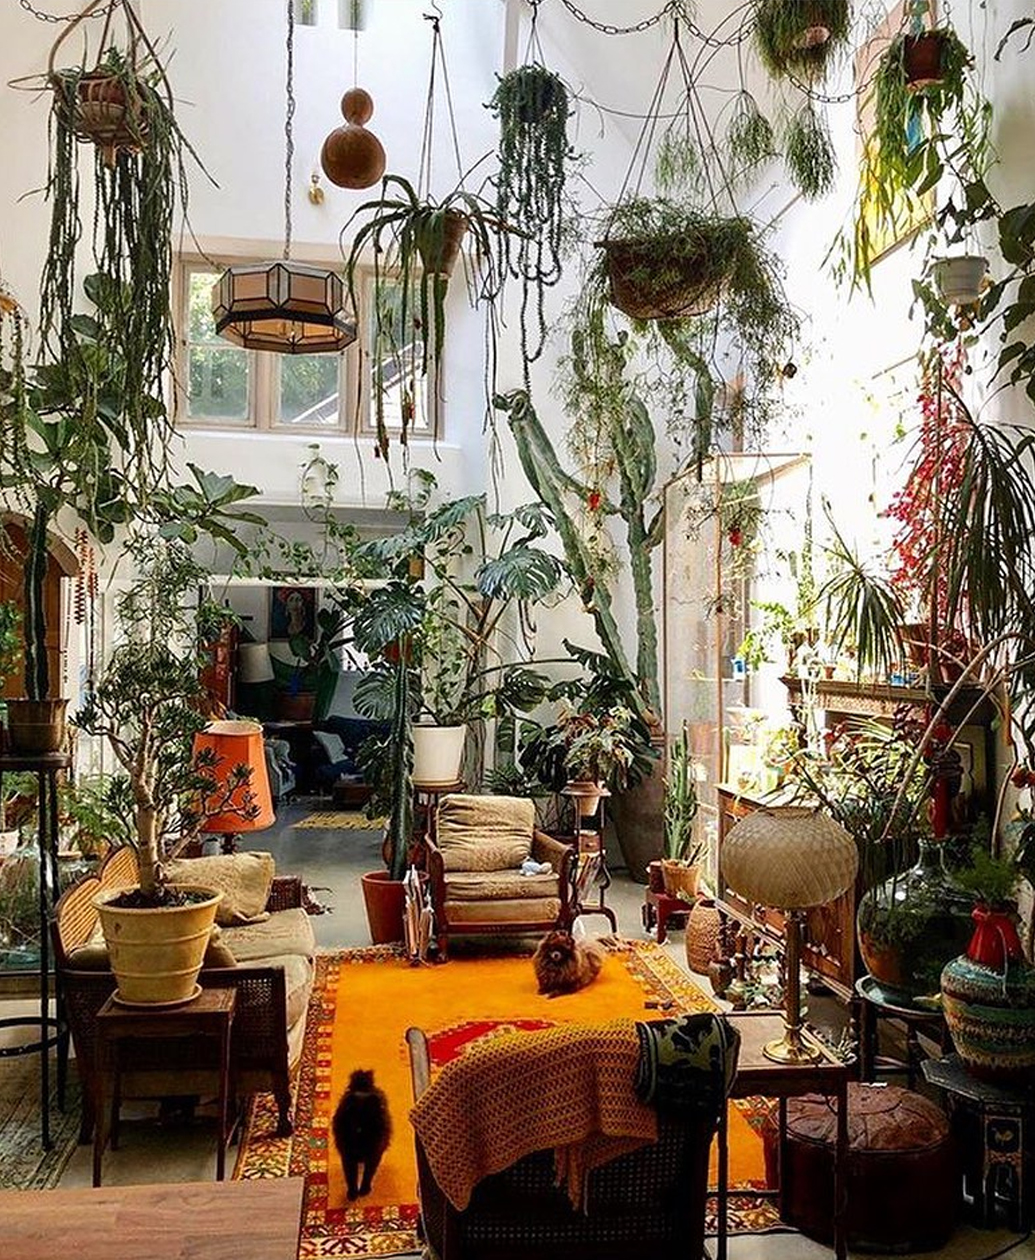 Indoor Plant Goals via @plantsindecor from the conservatory archives.